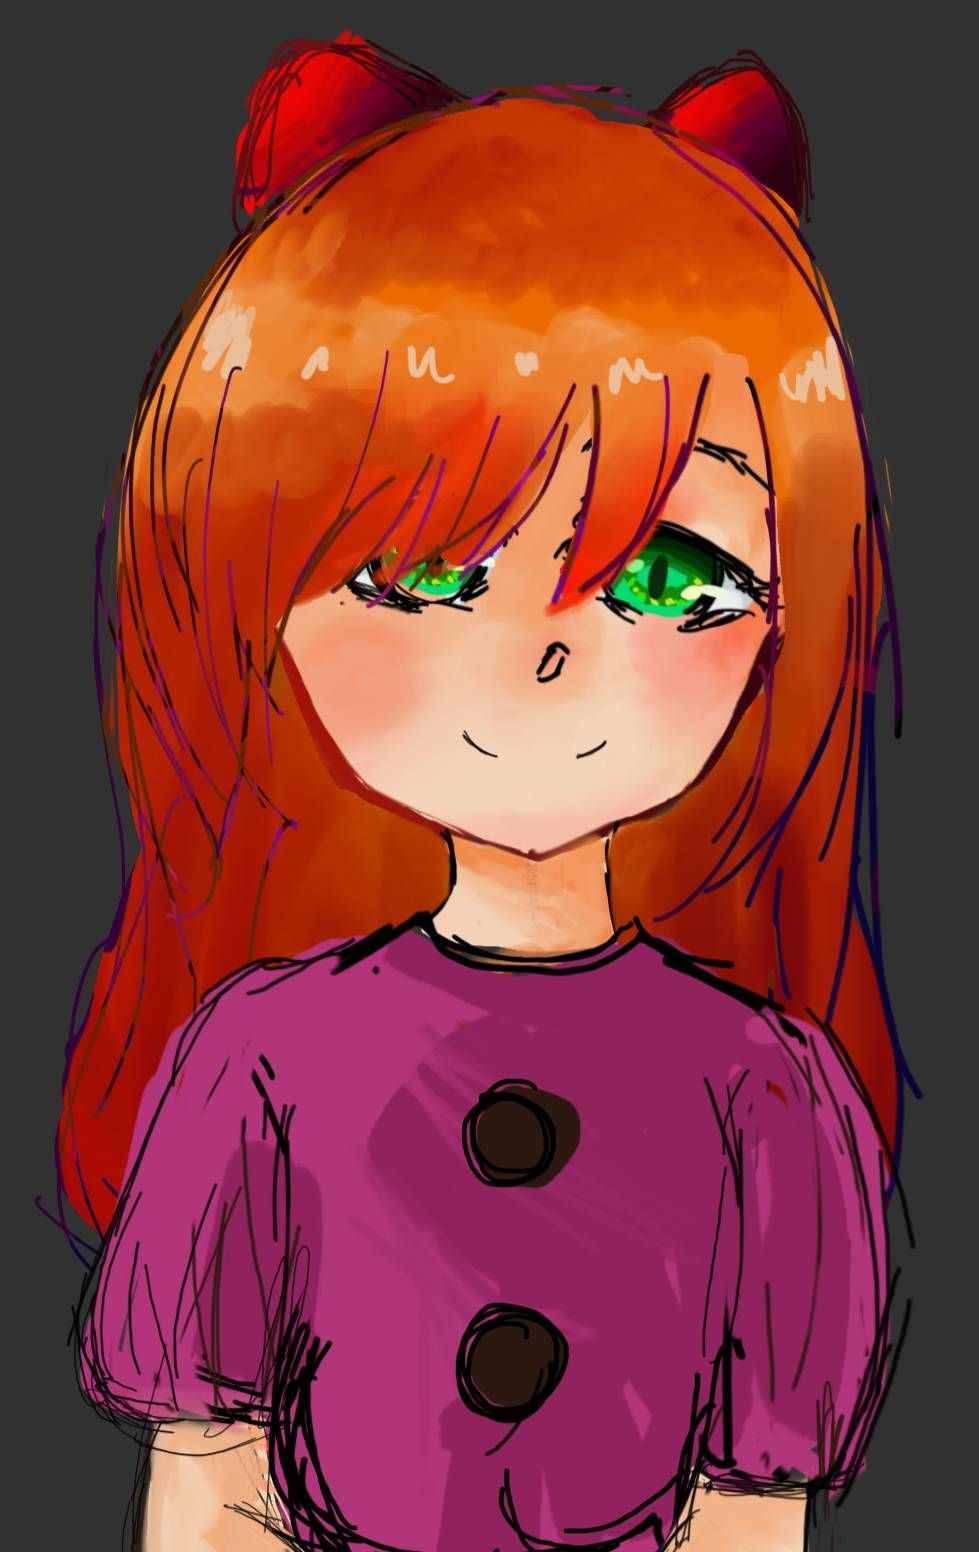 Elizabeth Afton Fanart By Bluehulu On Deviantart In 2020 Fnaf Drawings Afton Fan Art